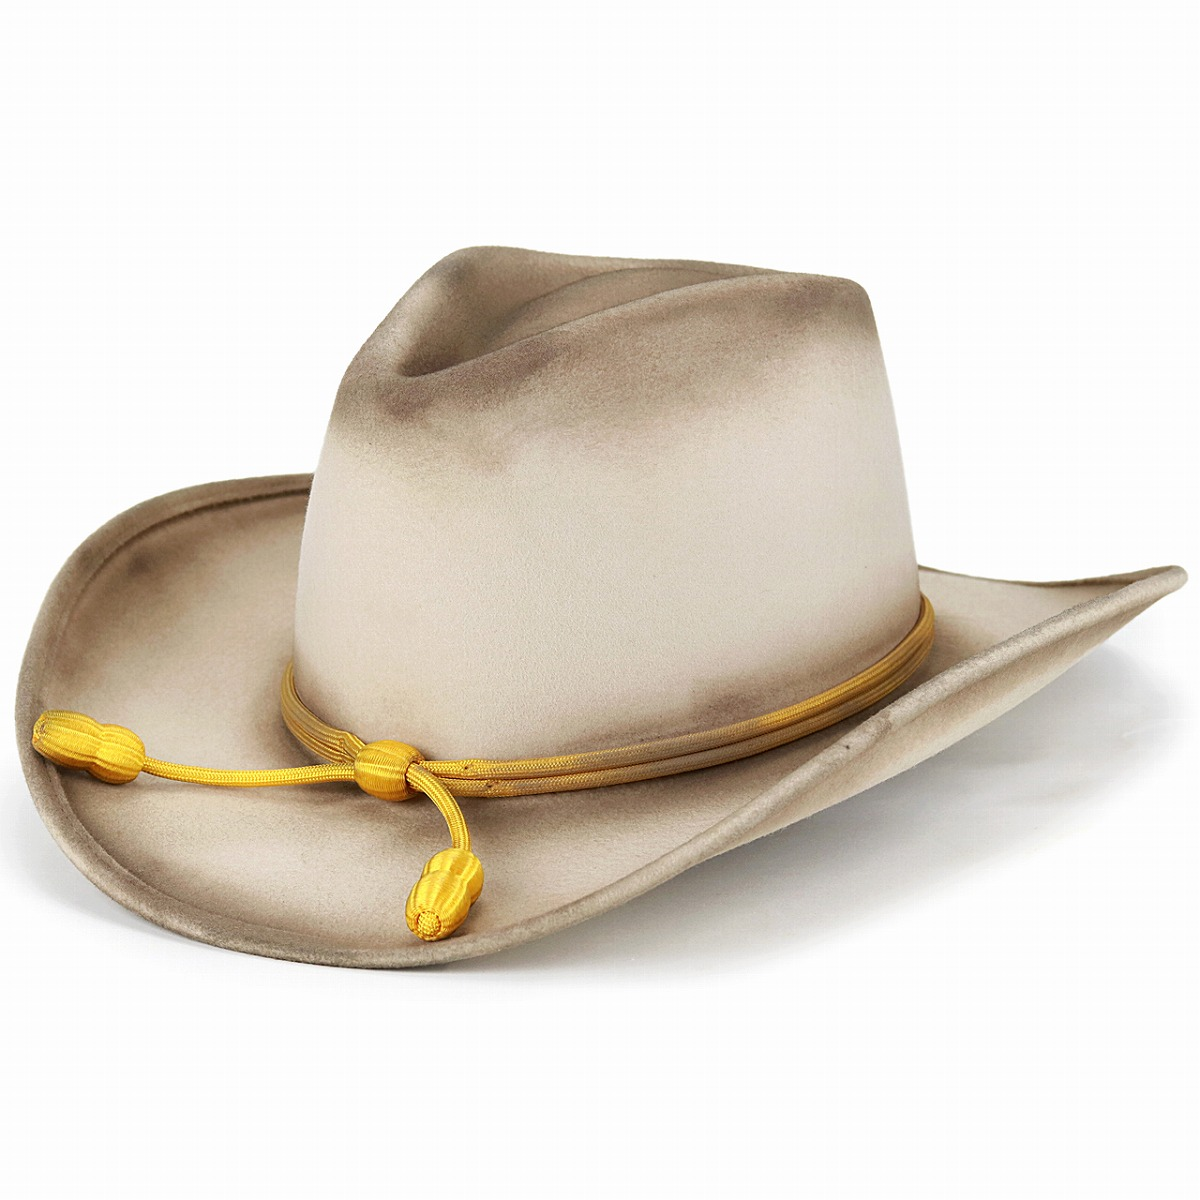 a01c6cd3b5f6d1 ... Size L XL individual Y ditch rim THE FORT unique beige silver berry  [straw hat ...